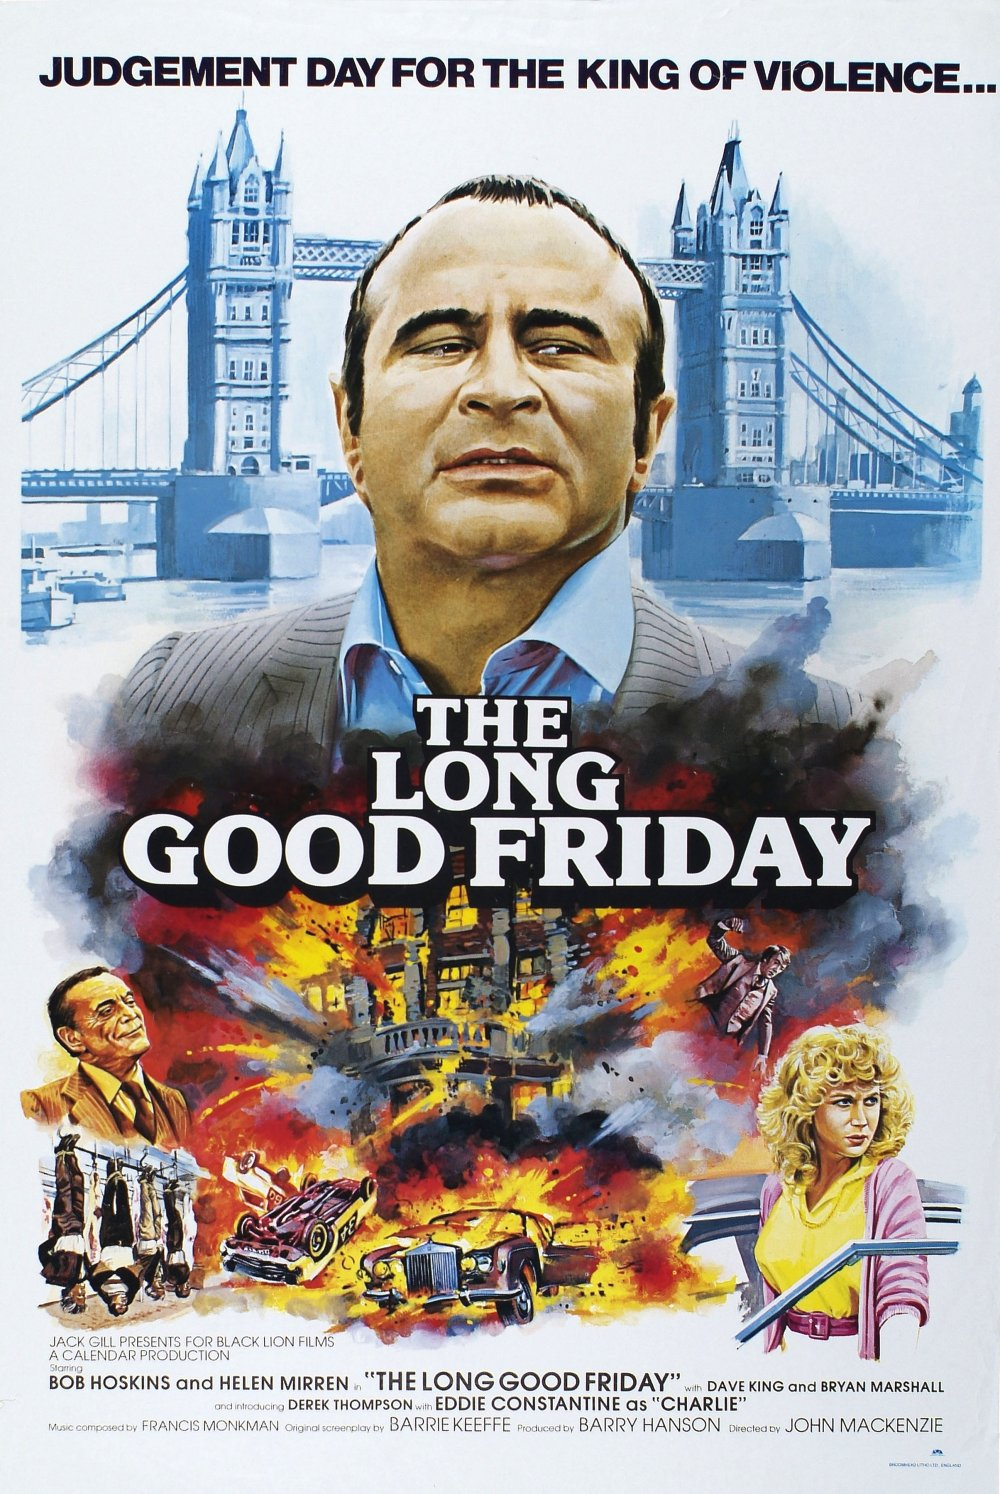 The poster for The Long Good Friday (1979), which turned Hoskins into a big-screen star, playing a ruthless gangland boss and political player. It remains an undisputed peak of the British gangster movie